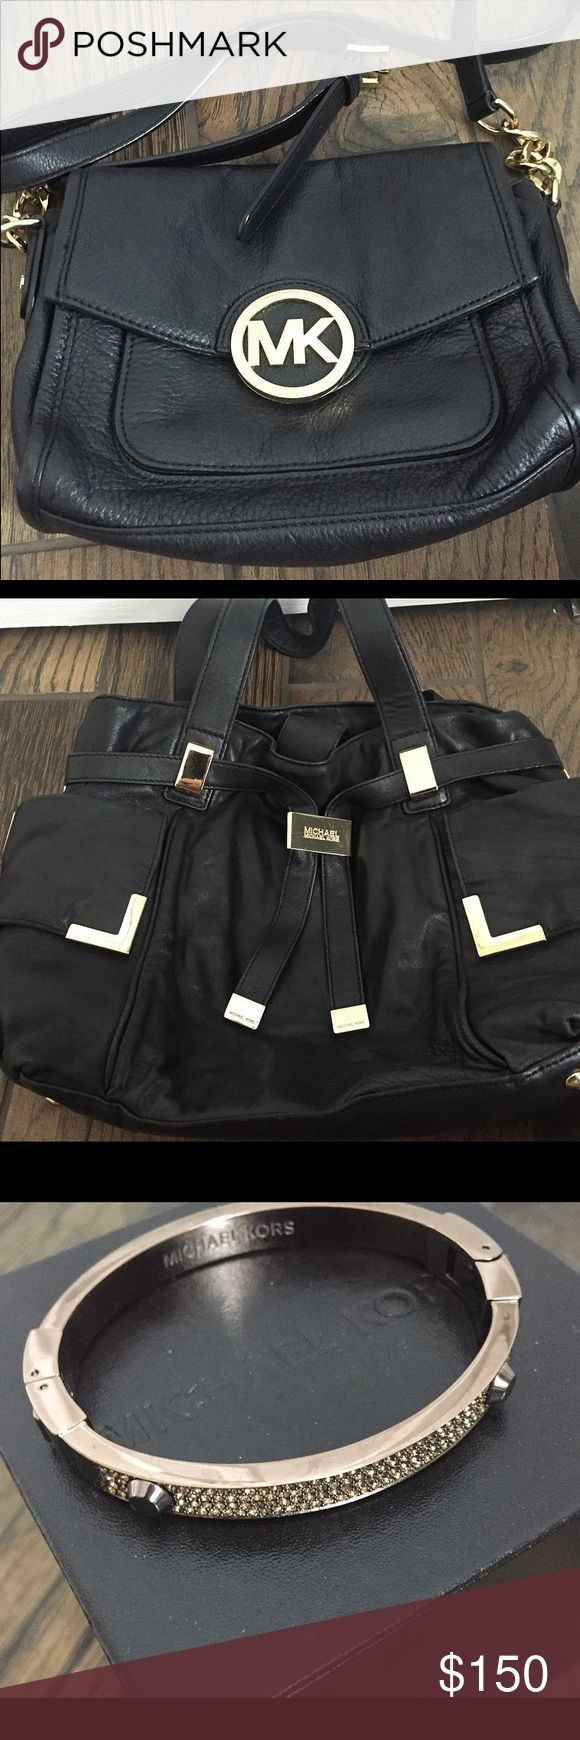 Gently Used MK purses and jewelry! Black cross body, tote, camel tote and wallet, rose gold card holder, tortoise watch, gold watch, white watch, bronze crystal bangle. Bags Shoulder Bags